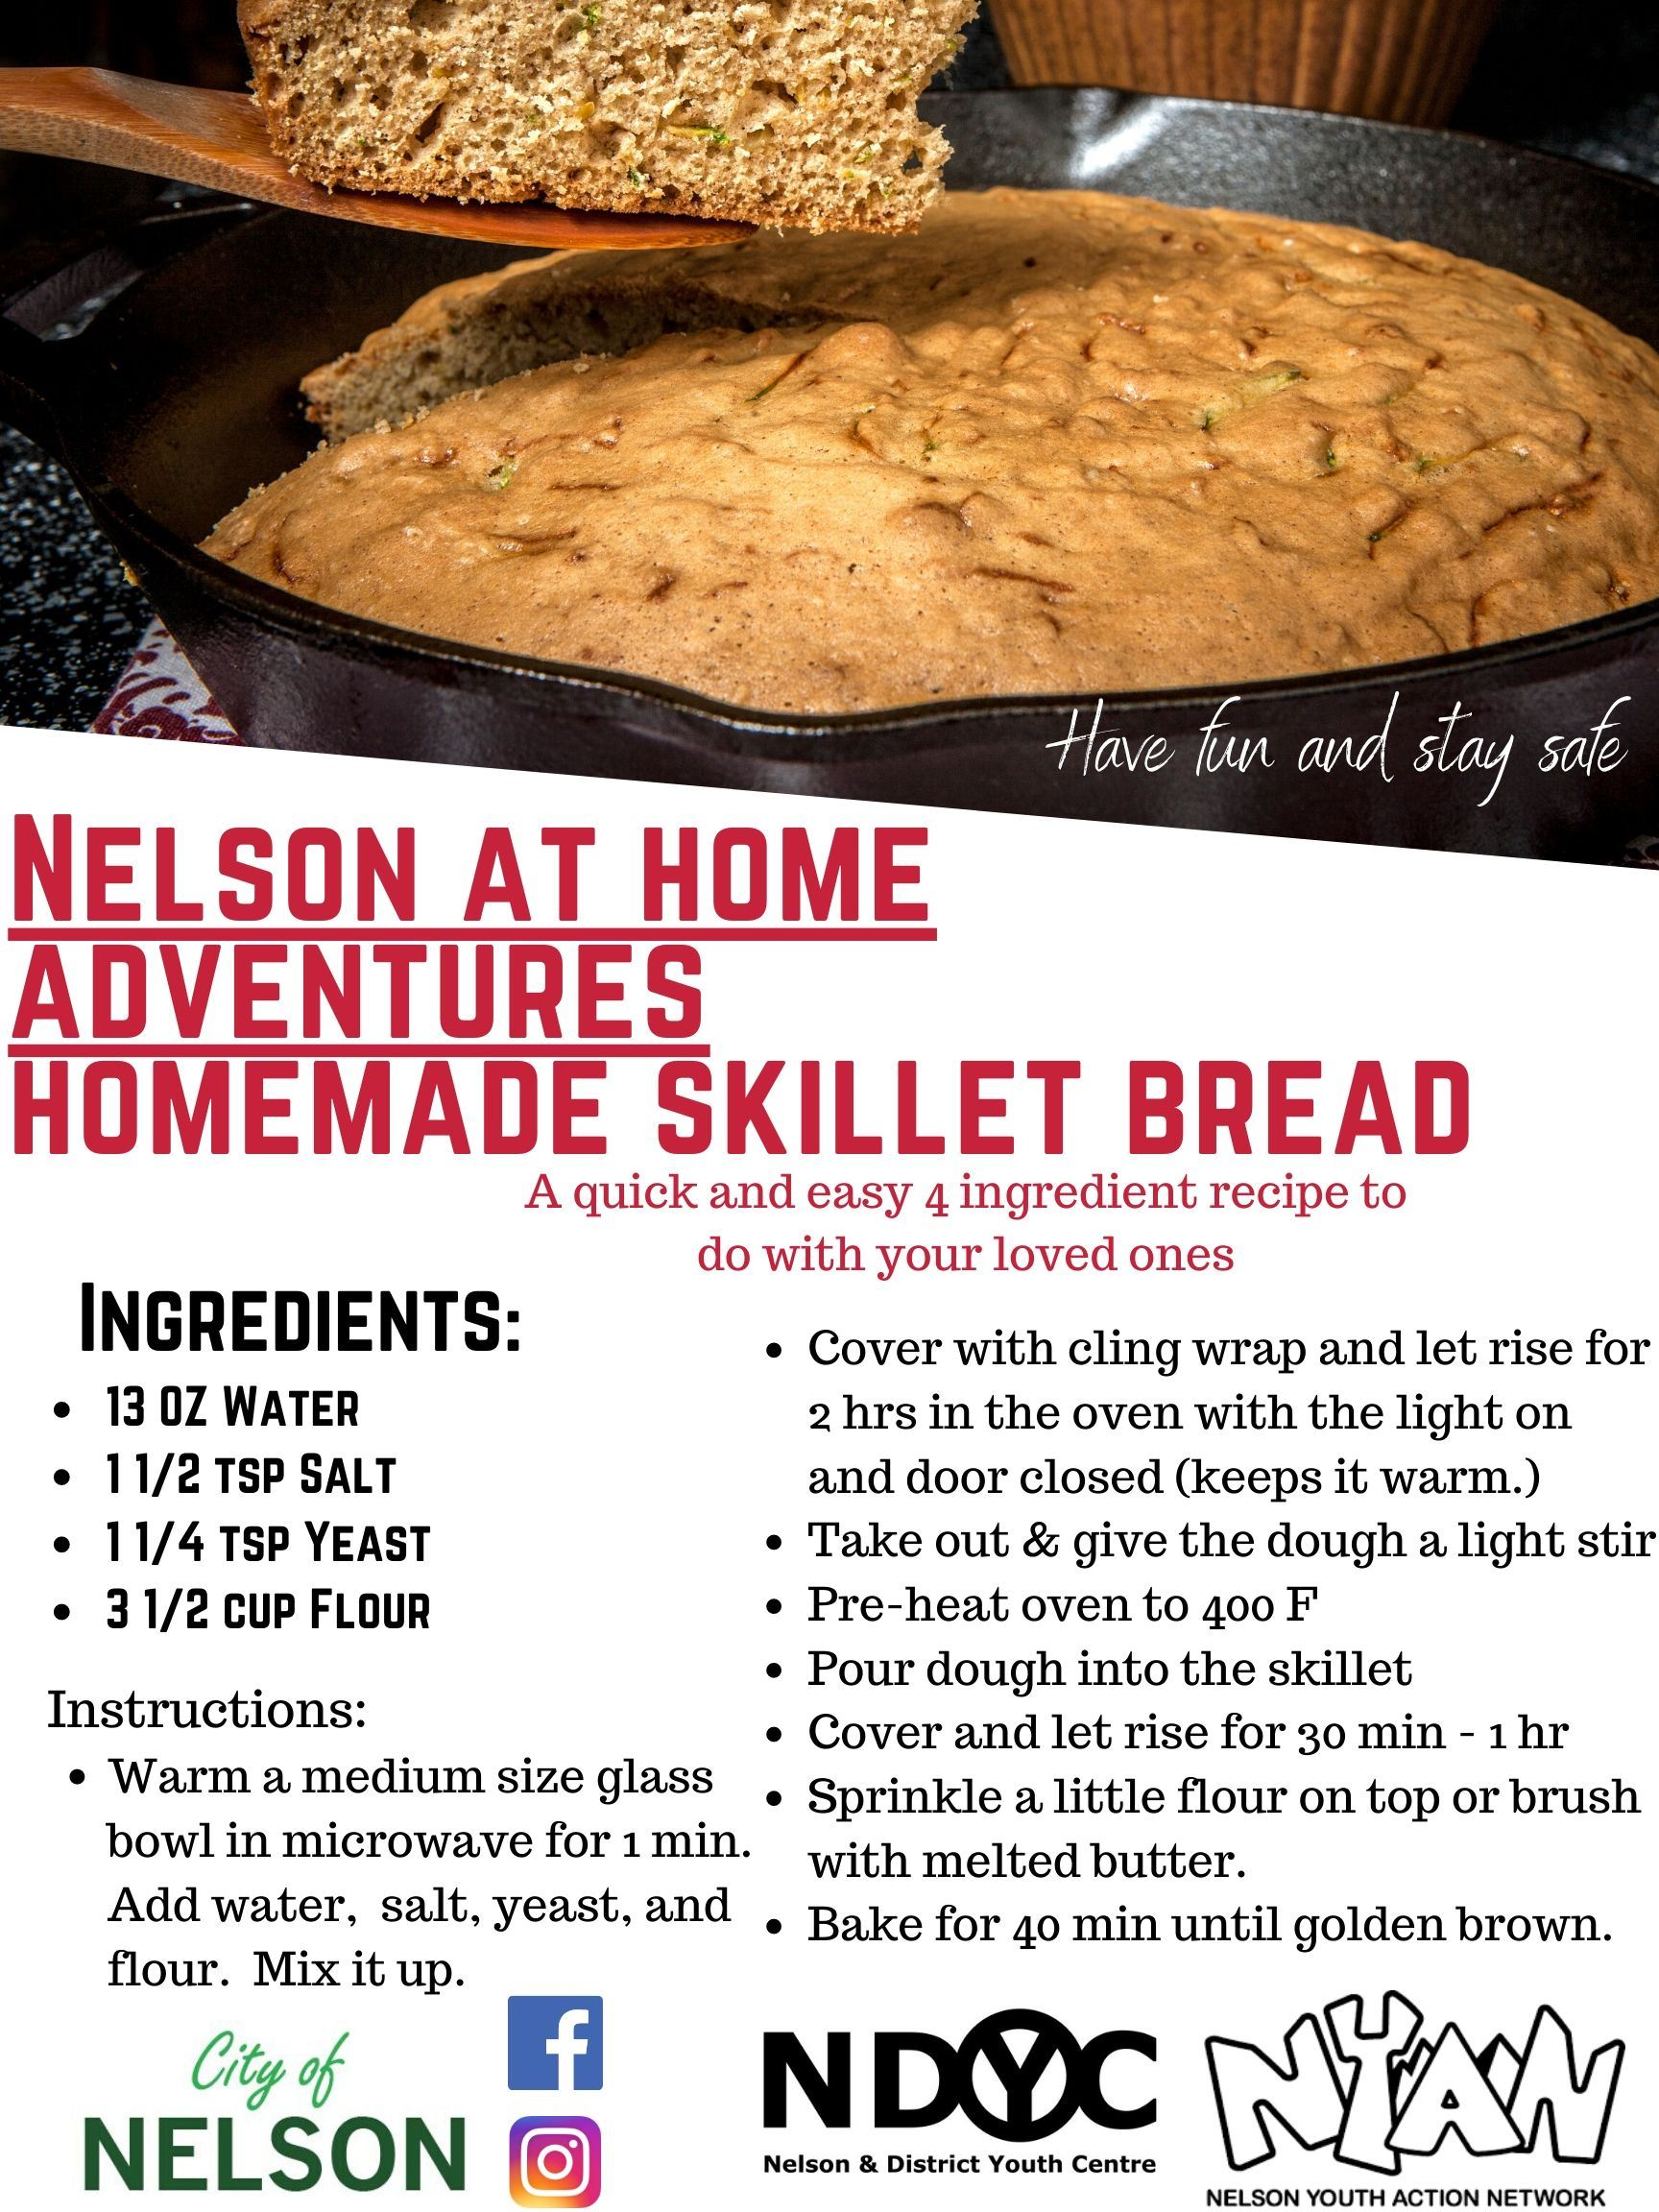 Nelson at home homemade skillet bread Opens in new window